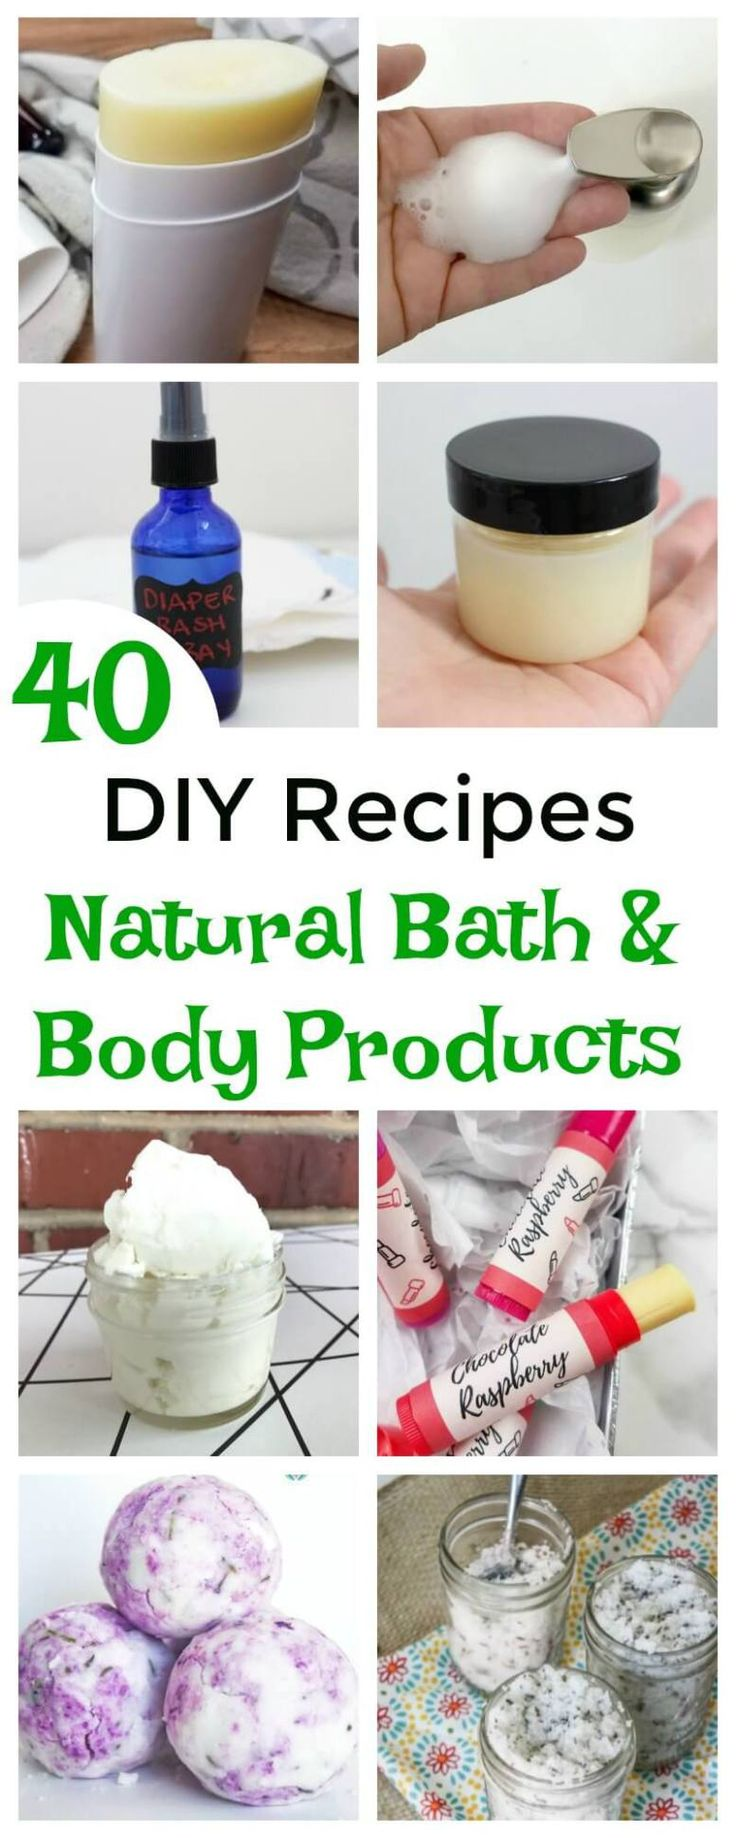 Did you know that most of us come in contact with more than 100 toxic chemicals every morning before we even leave our homes? Make your own DIY bath and body to avoid toxic chemicals and save money. Get this new ebook with 40 recipes for everyone in your family - DIY baby products to DIY self-care products. #DIYBeauty #MamaInstinctsBlog